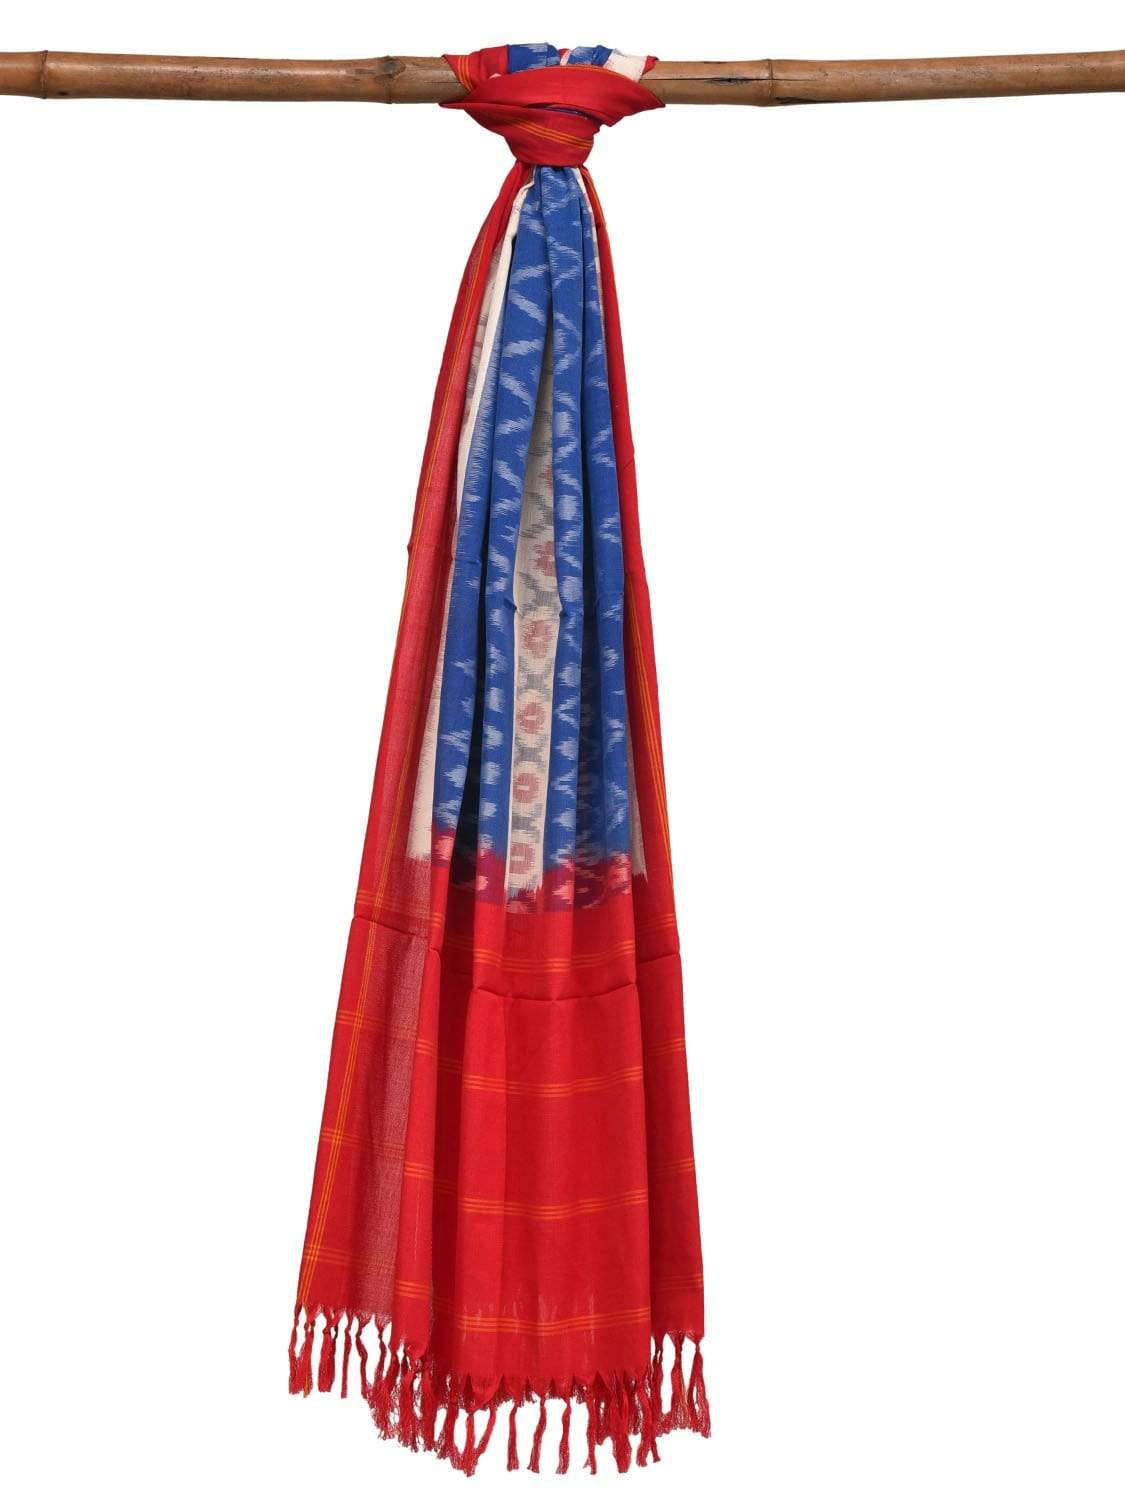 Blue and Red Pochampally Ikat Cotton Handloom Dupatta with Double Design ds1892